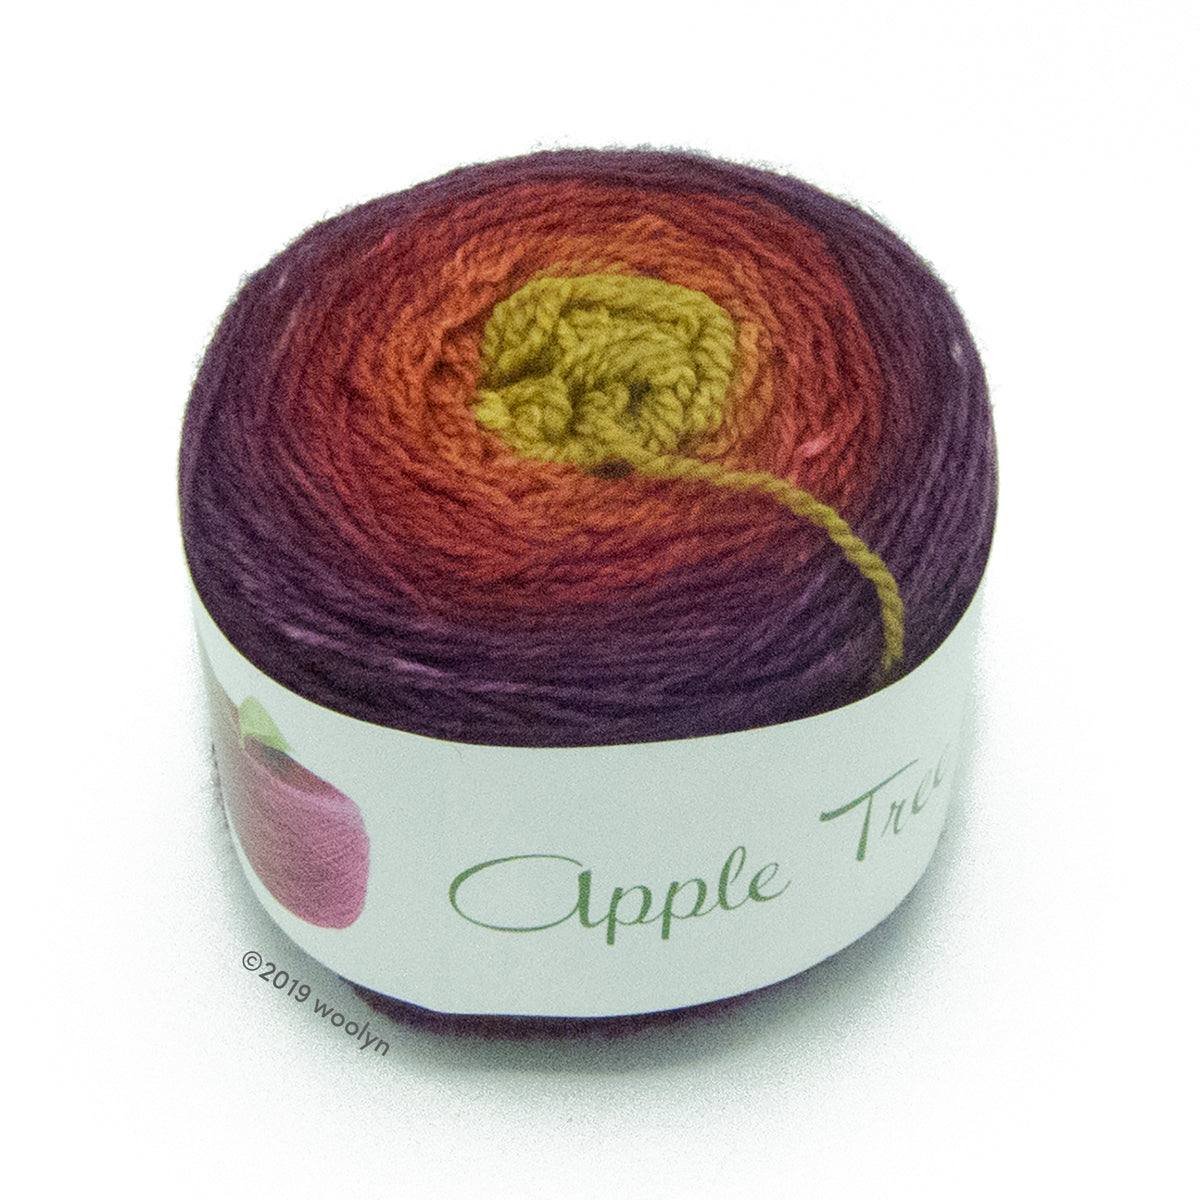 A wound cake of hand dyed fingering weight yarn from Apple Tree Knits..  Yarn is a gradient from deep purple to brown to yellow green.